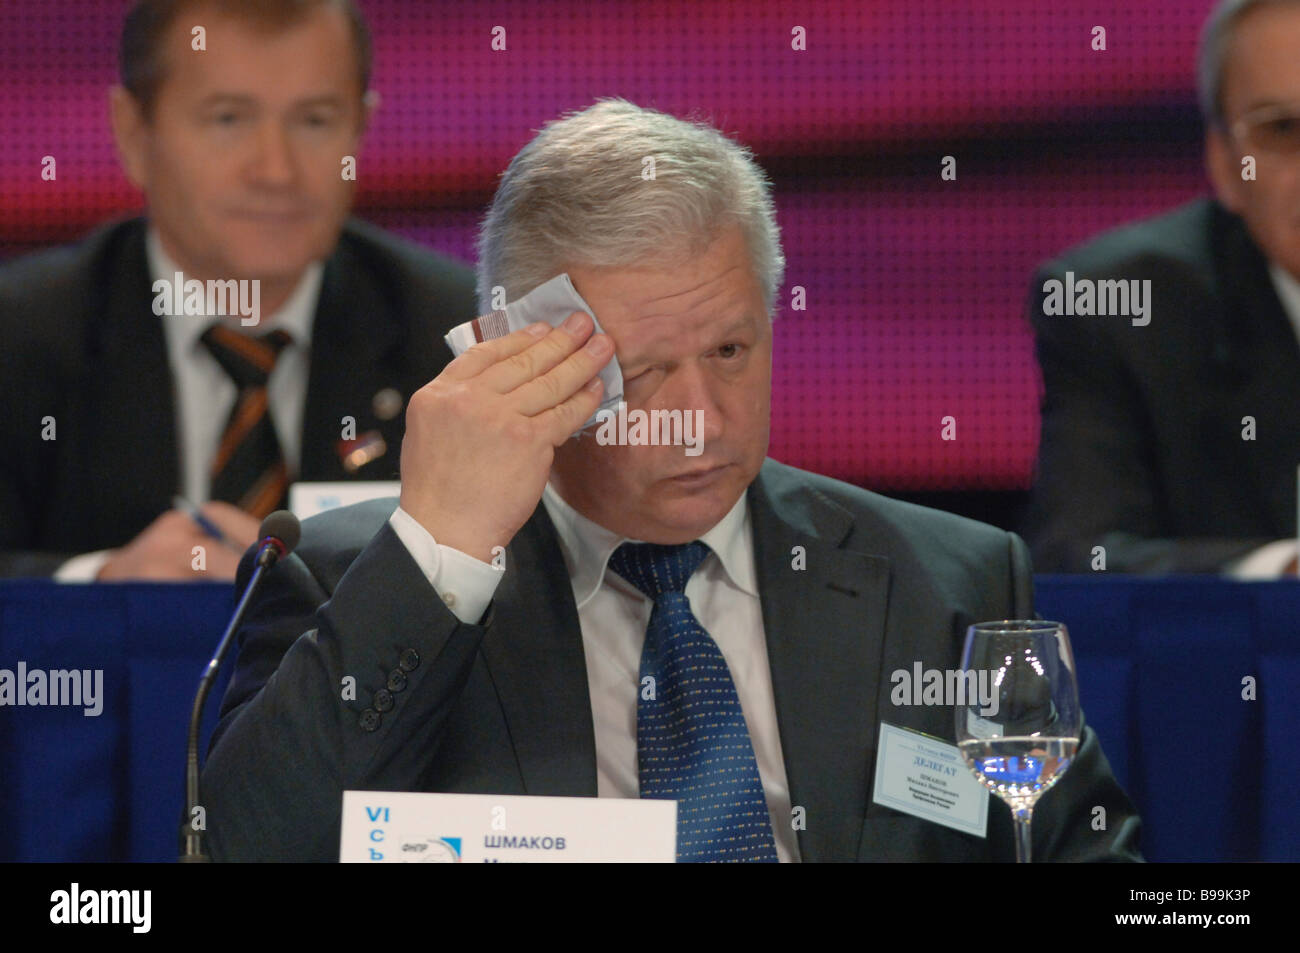 Head of the Federation of Independent Trade Unions Mikhail Shmakov addressing the 6th session of the Federation - Stock Image